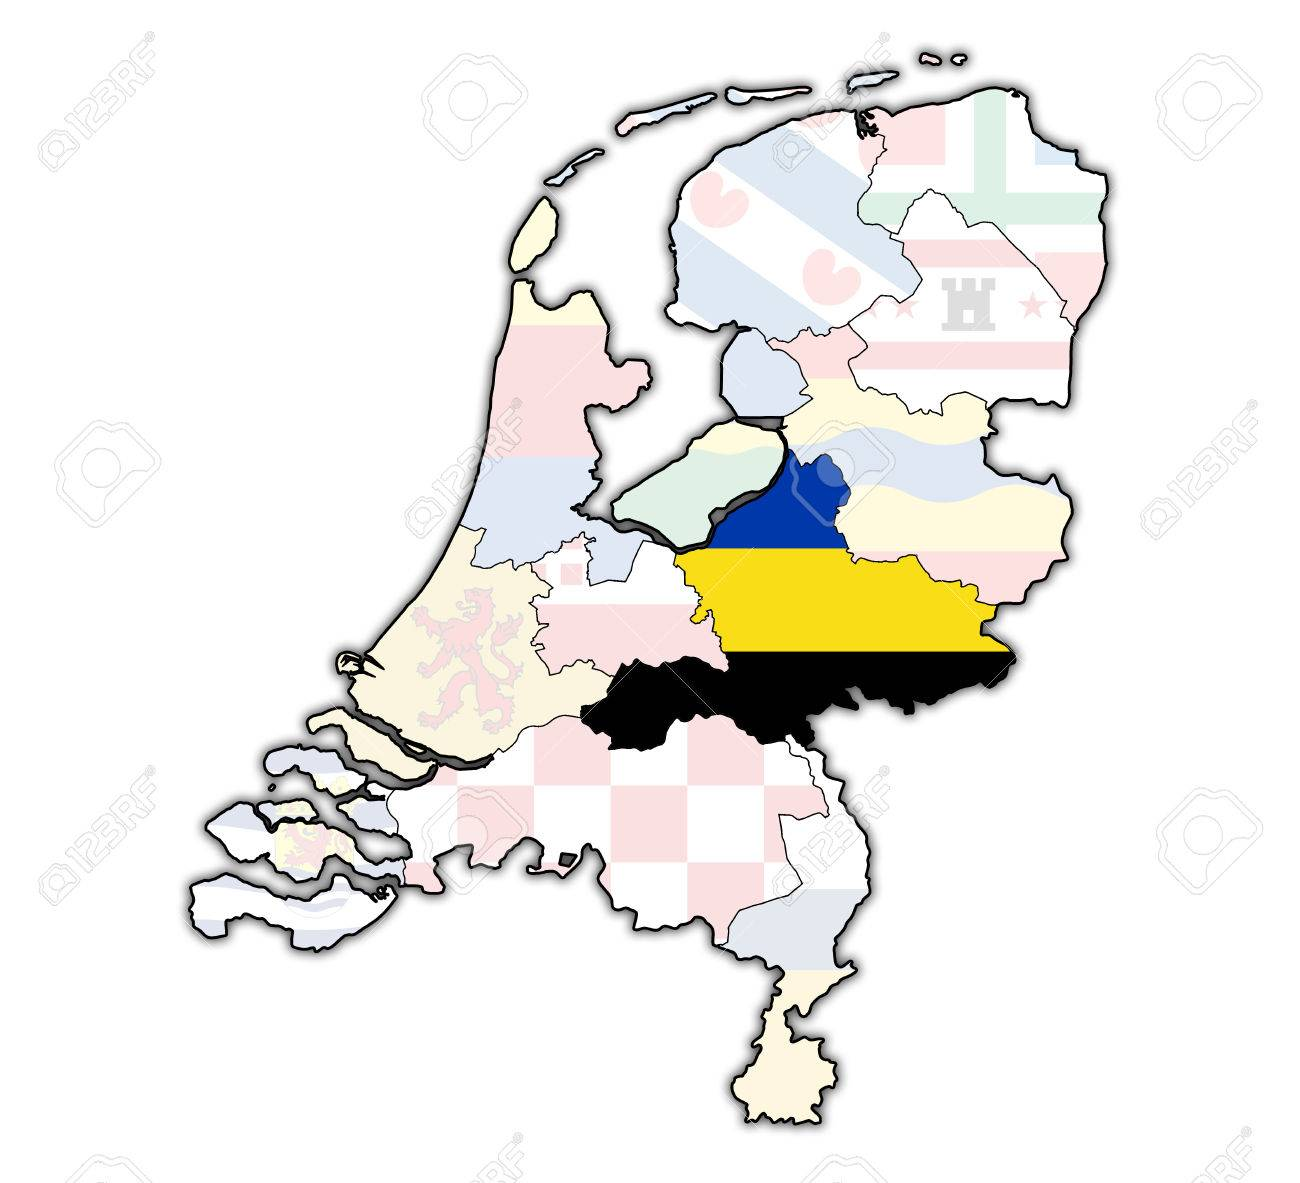 Gelderland Flag On Map With Borders Of Provinces In Netherlands